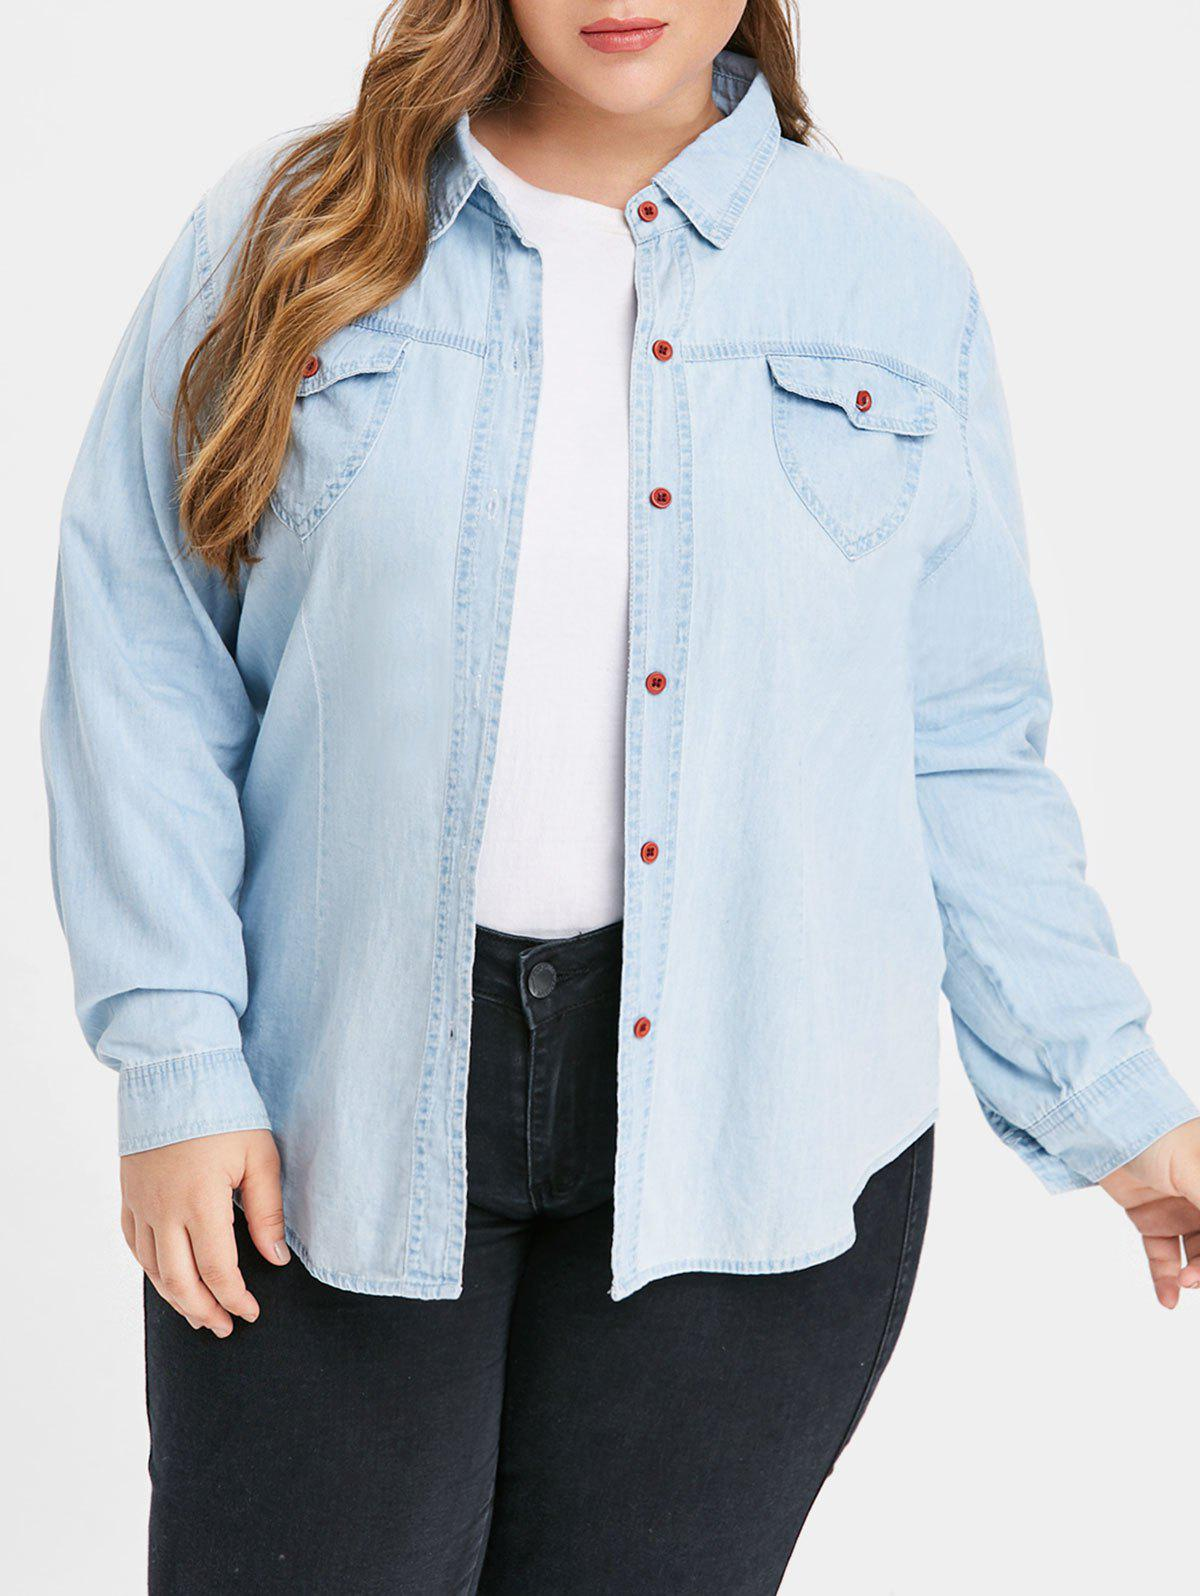 Chic Front Pockets Plus Size Shirt